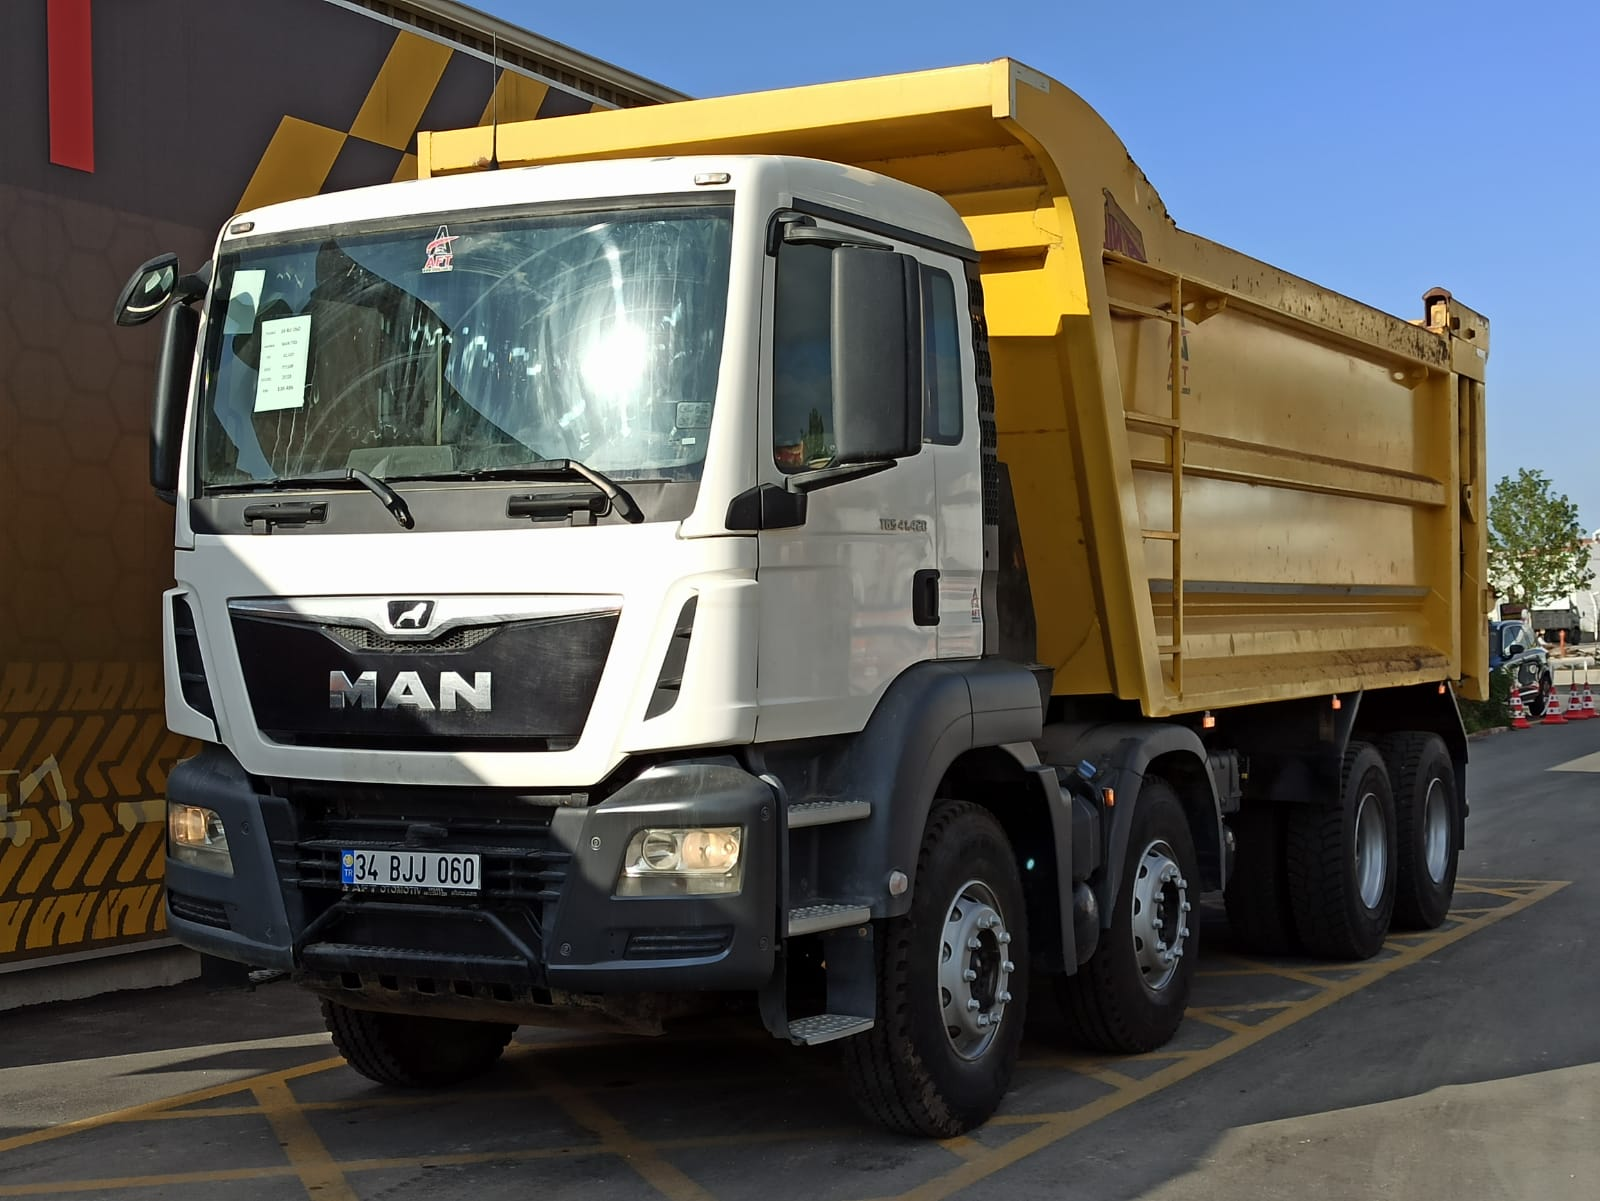 2018 MODEL MAN TGS 41.420 E6 AC 8X4 HARDOX TIPPER  - Erçal Trucks